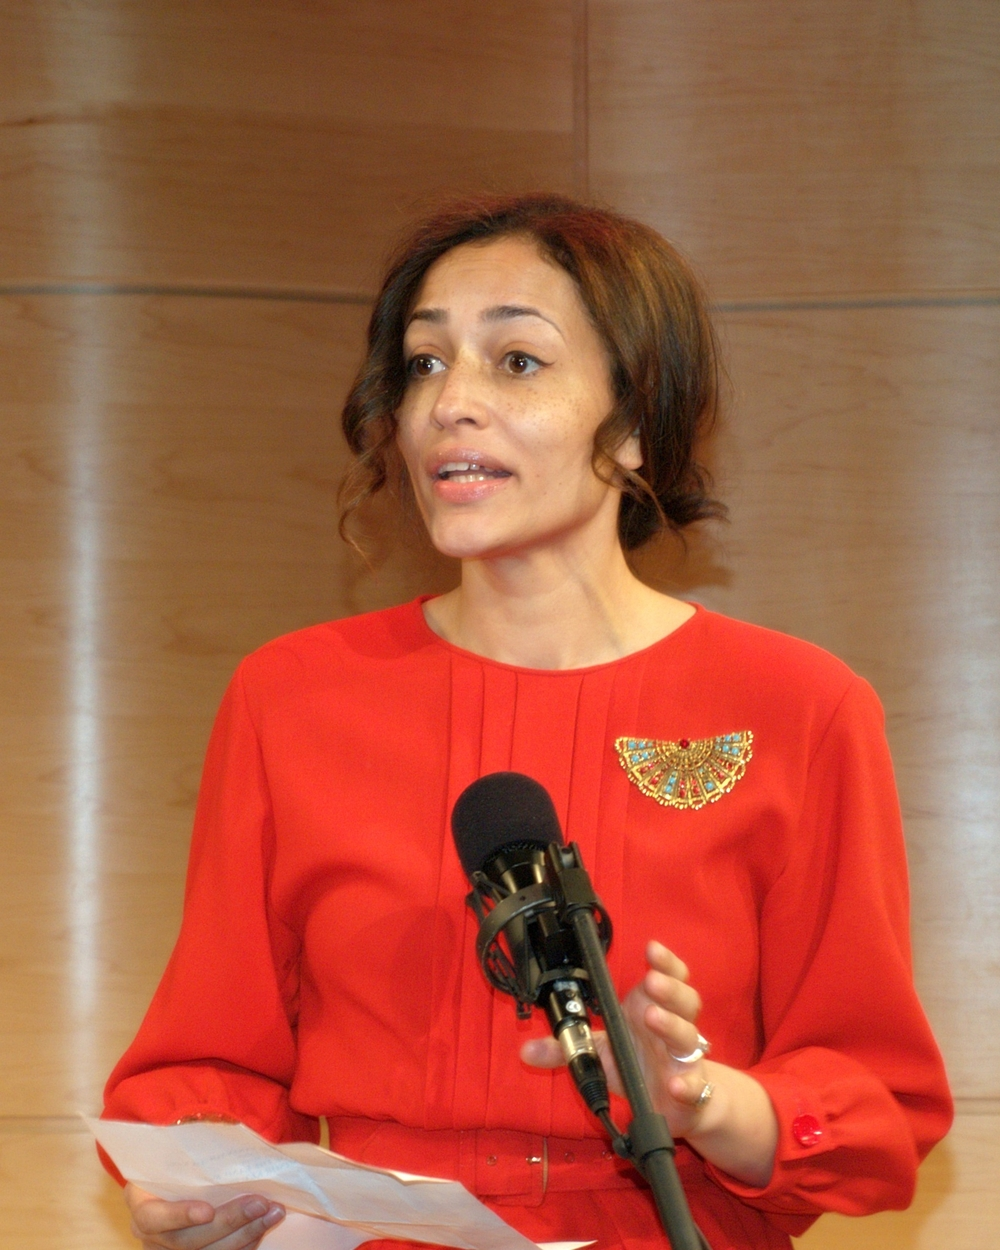 Zadie Smith (Source: Wikipedia)